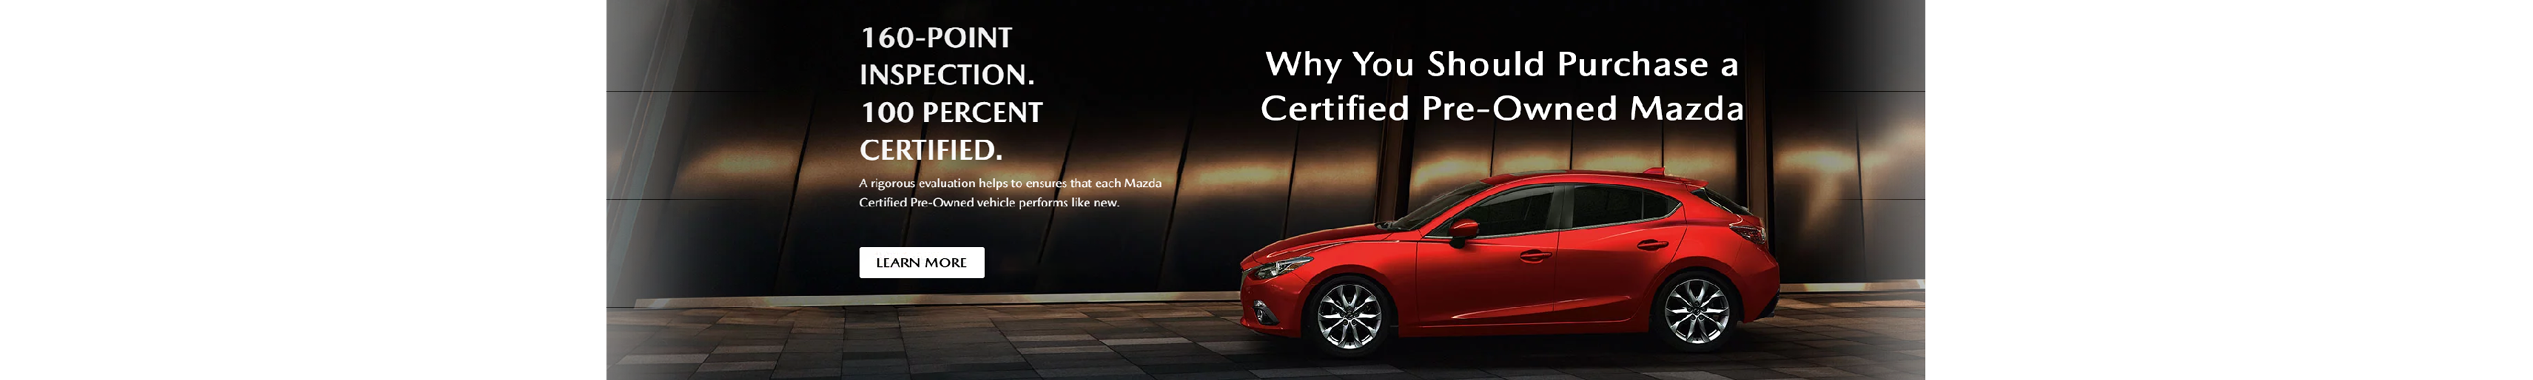 Destination Mazda Vancouver Certified Pre-Owned Mazda